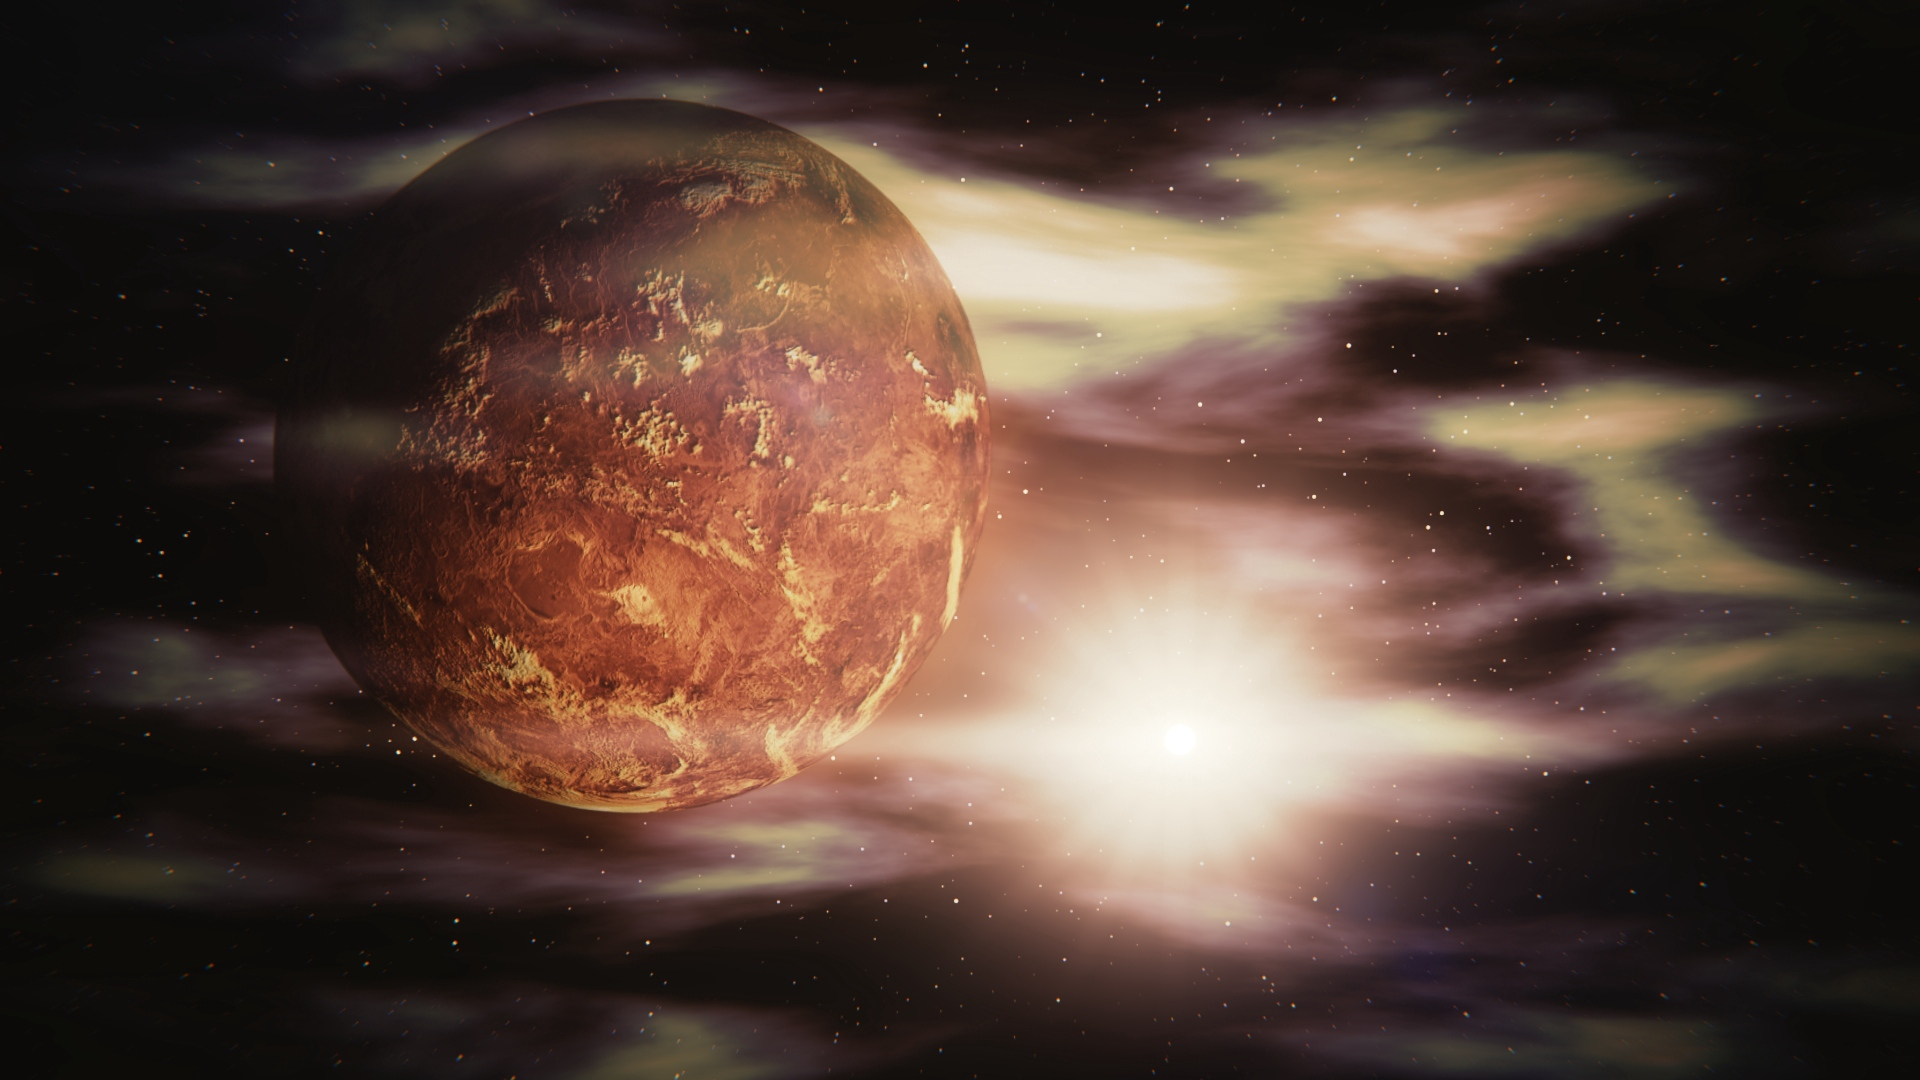 venus space galaxy x